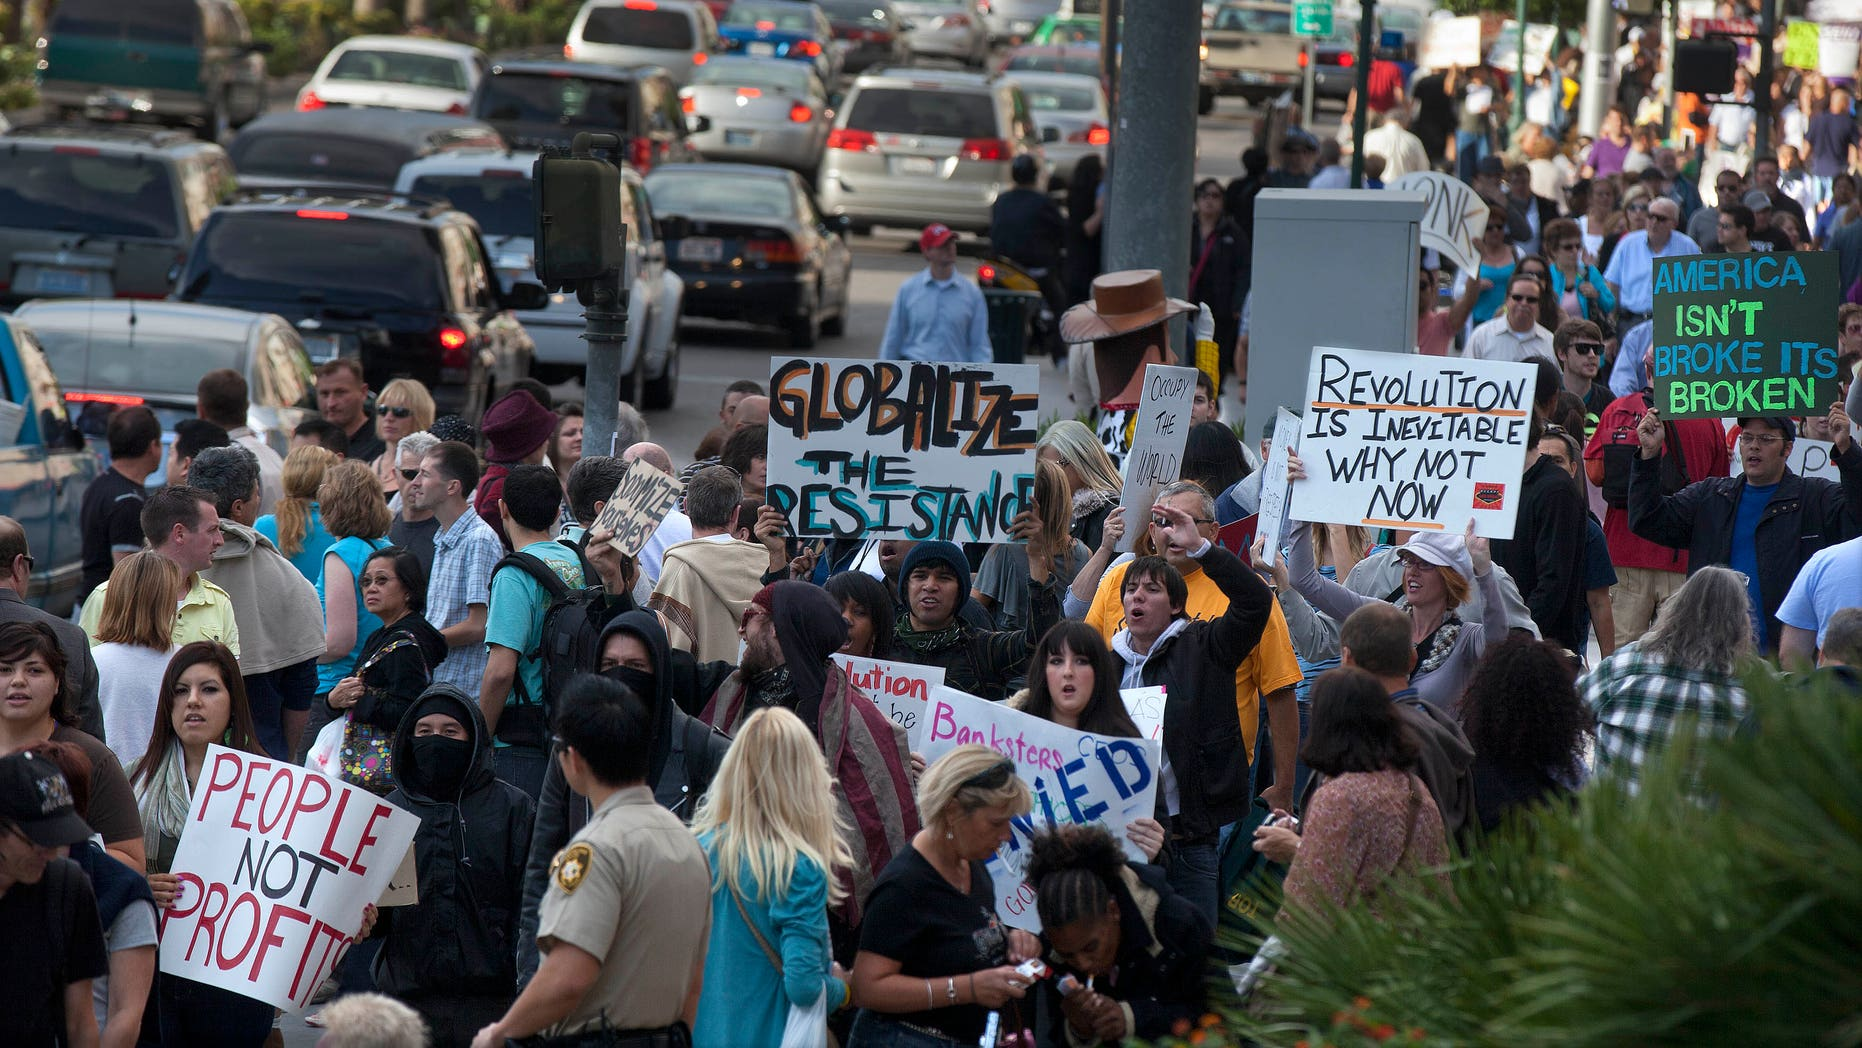 Protestors shout slogans as they participate in an Occupy Wall Street demonstration, Thursday, Oct. 6, 2011, in Las Vegas. Union officials, college students and homeowners facing foreclosure marched down the Las Vegas Strip in support of the Occupy Wall Street demonstrations.